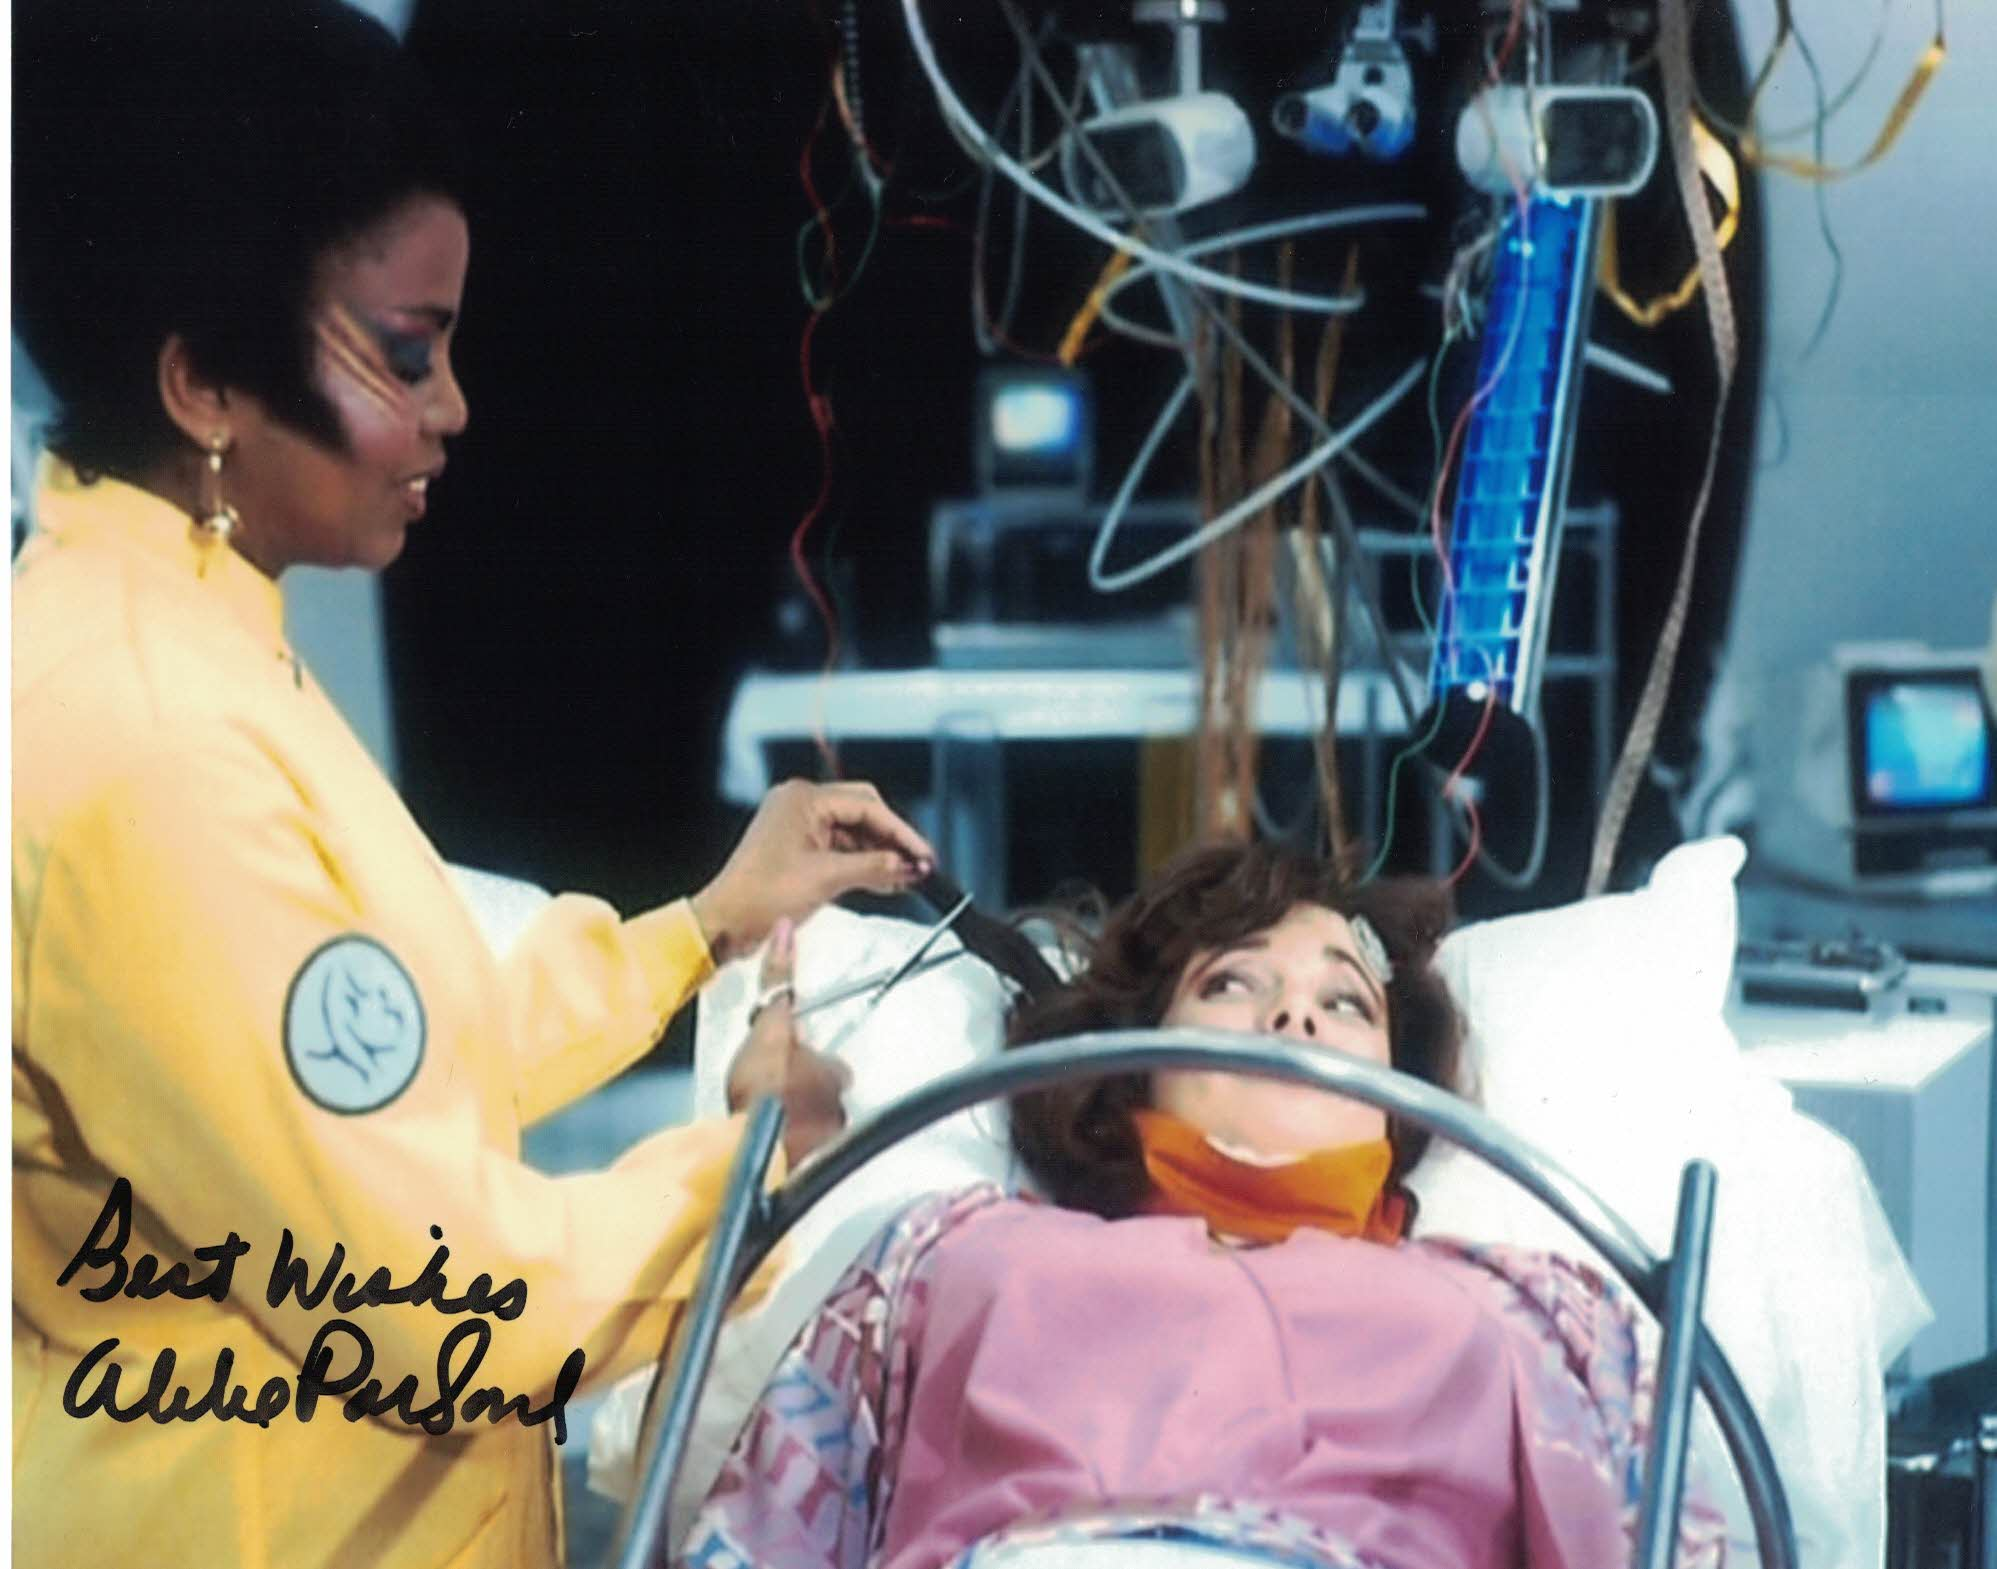 ALIBE PARSONS - Matrona Kani - Mindwarp - Doctor Who hand signed 10 x 8 photo